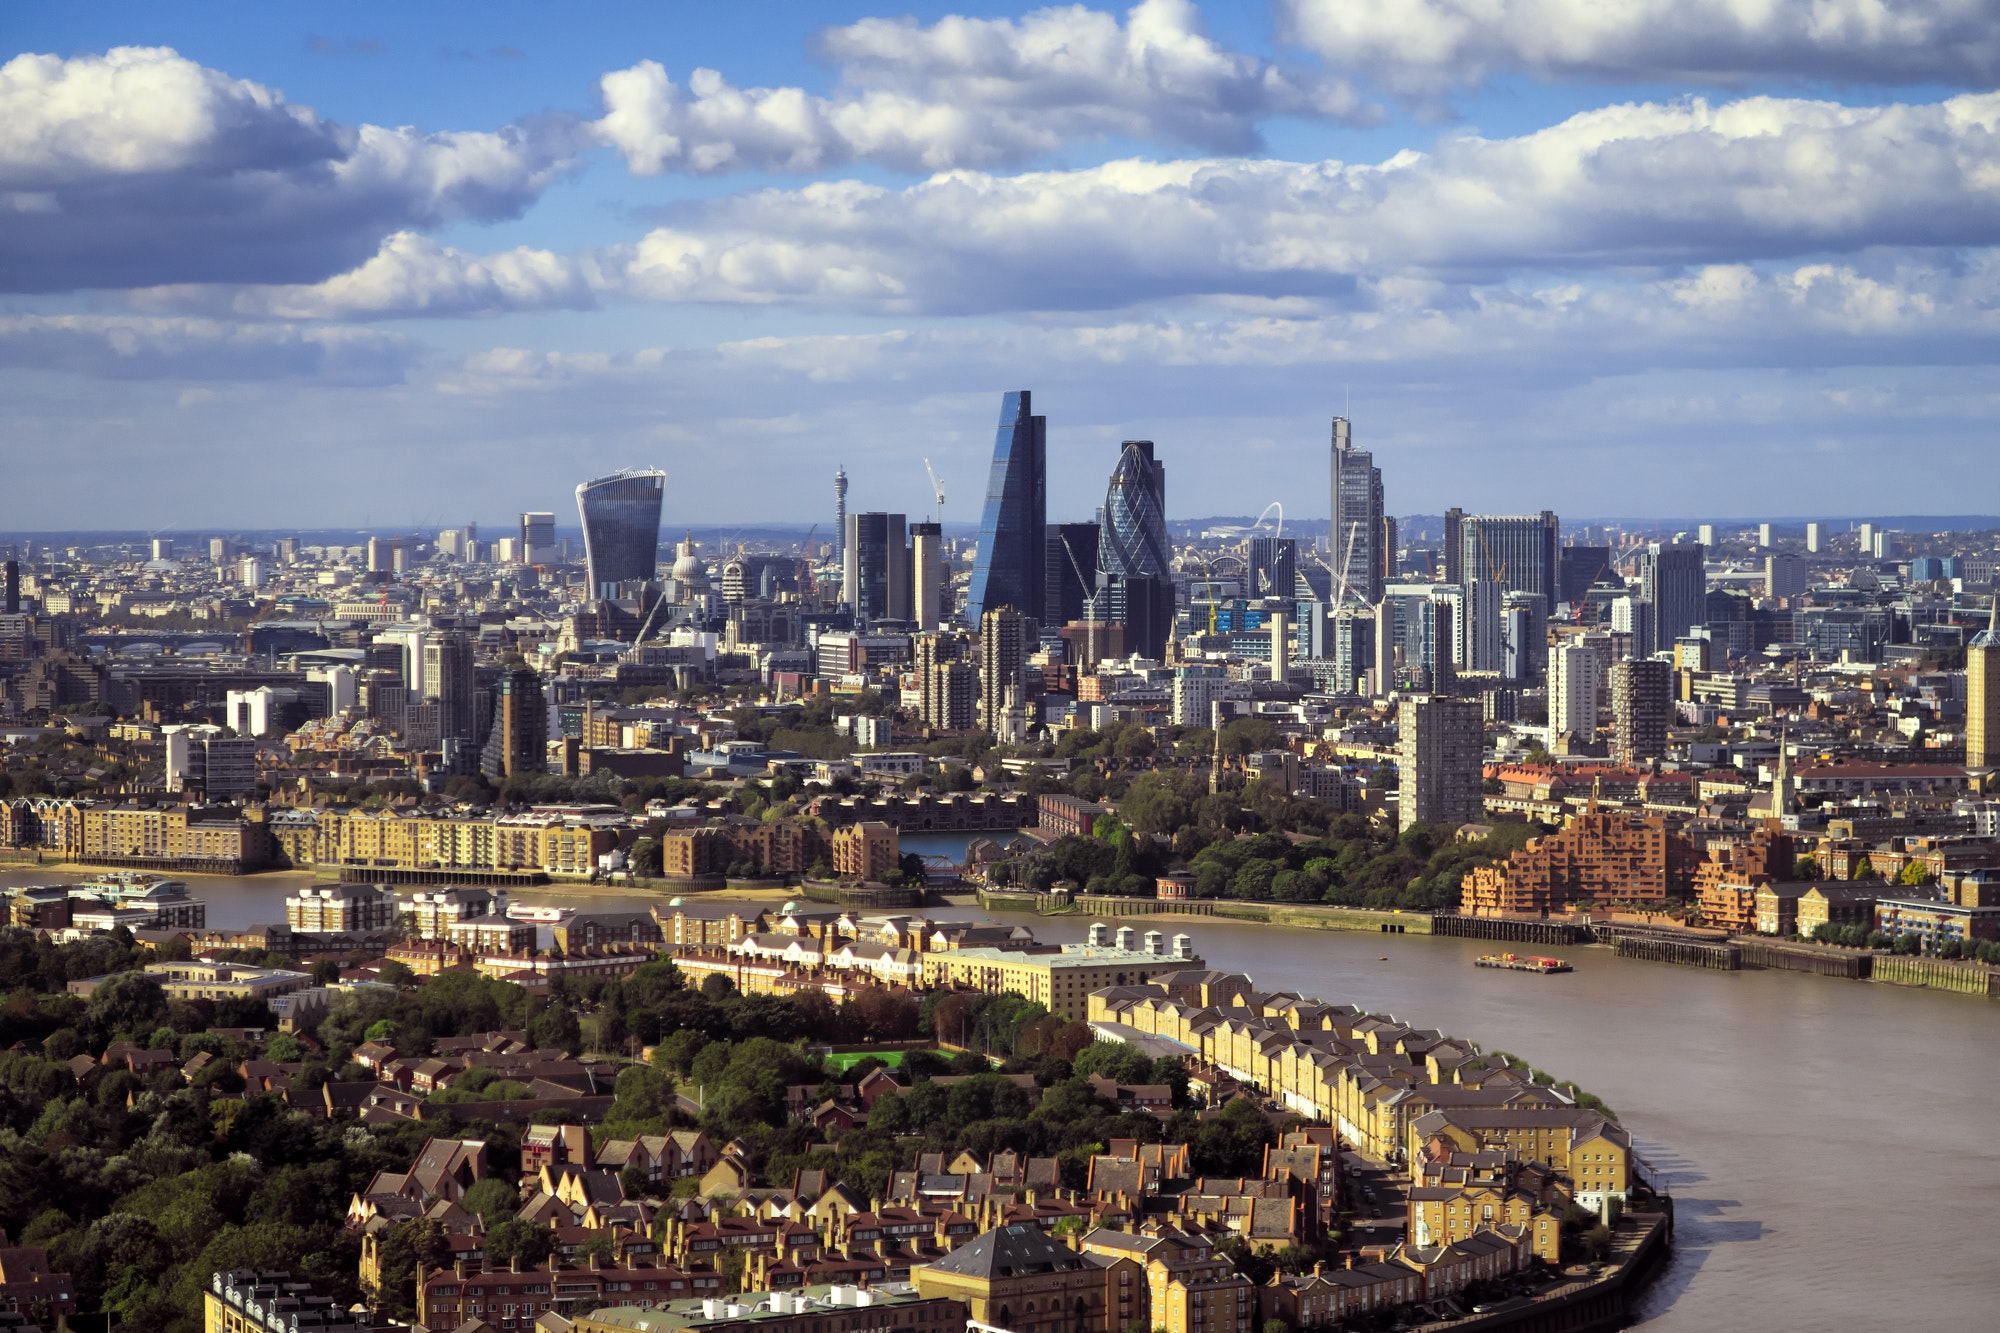 London view at bank district, amazing skyscrapers and Thames river, United Kingdom